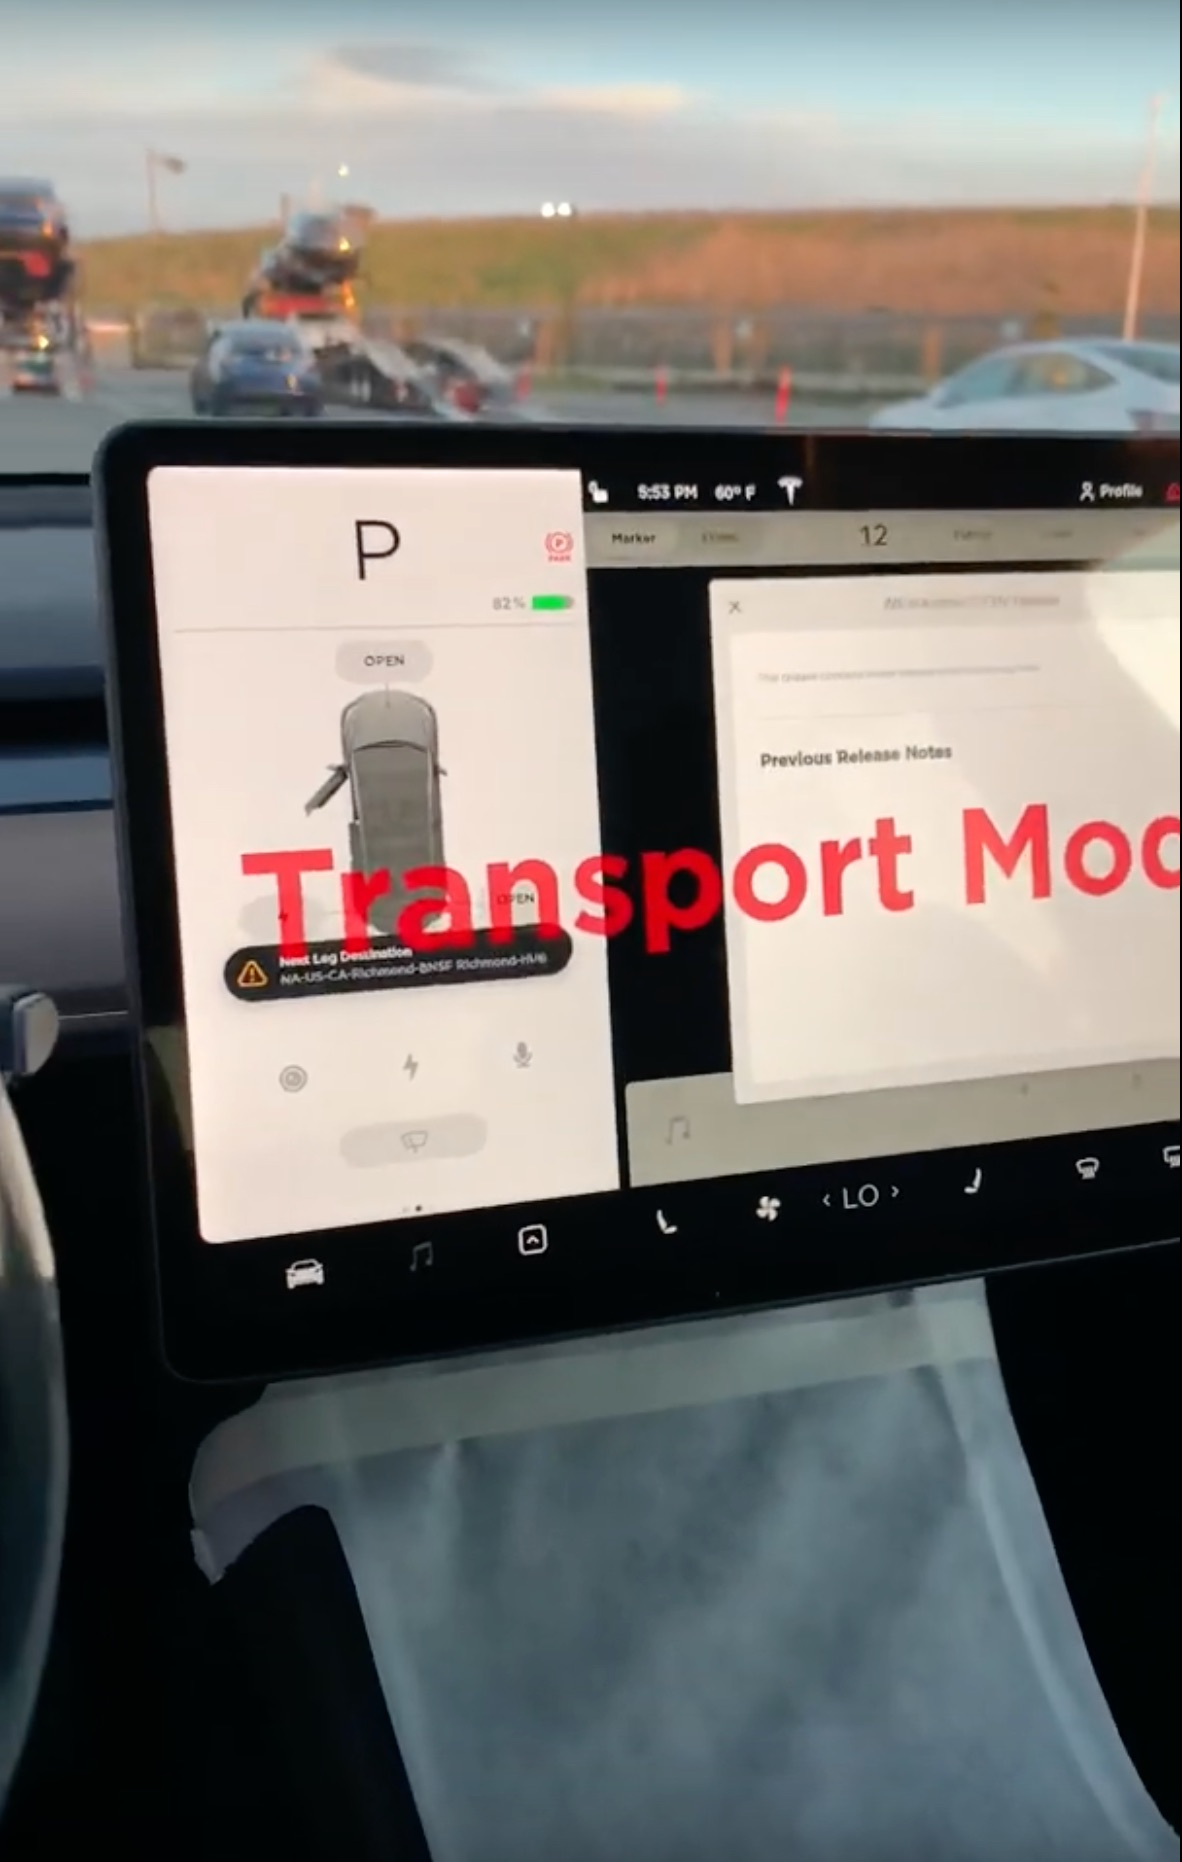 Tesla Model Y Transport Mode